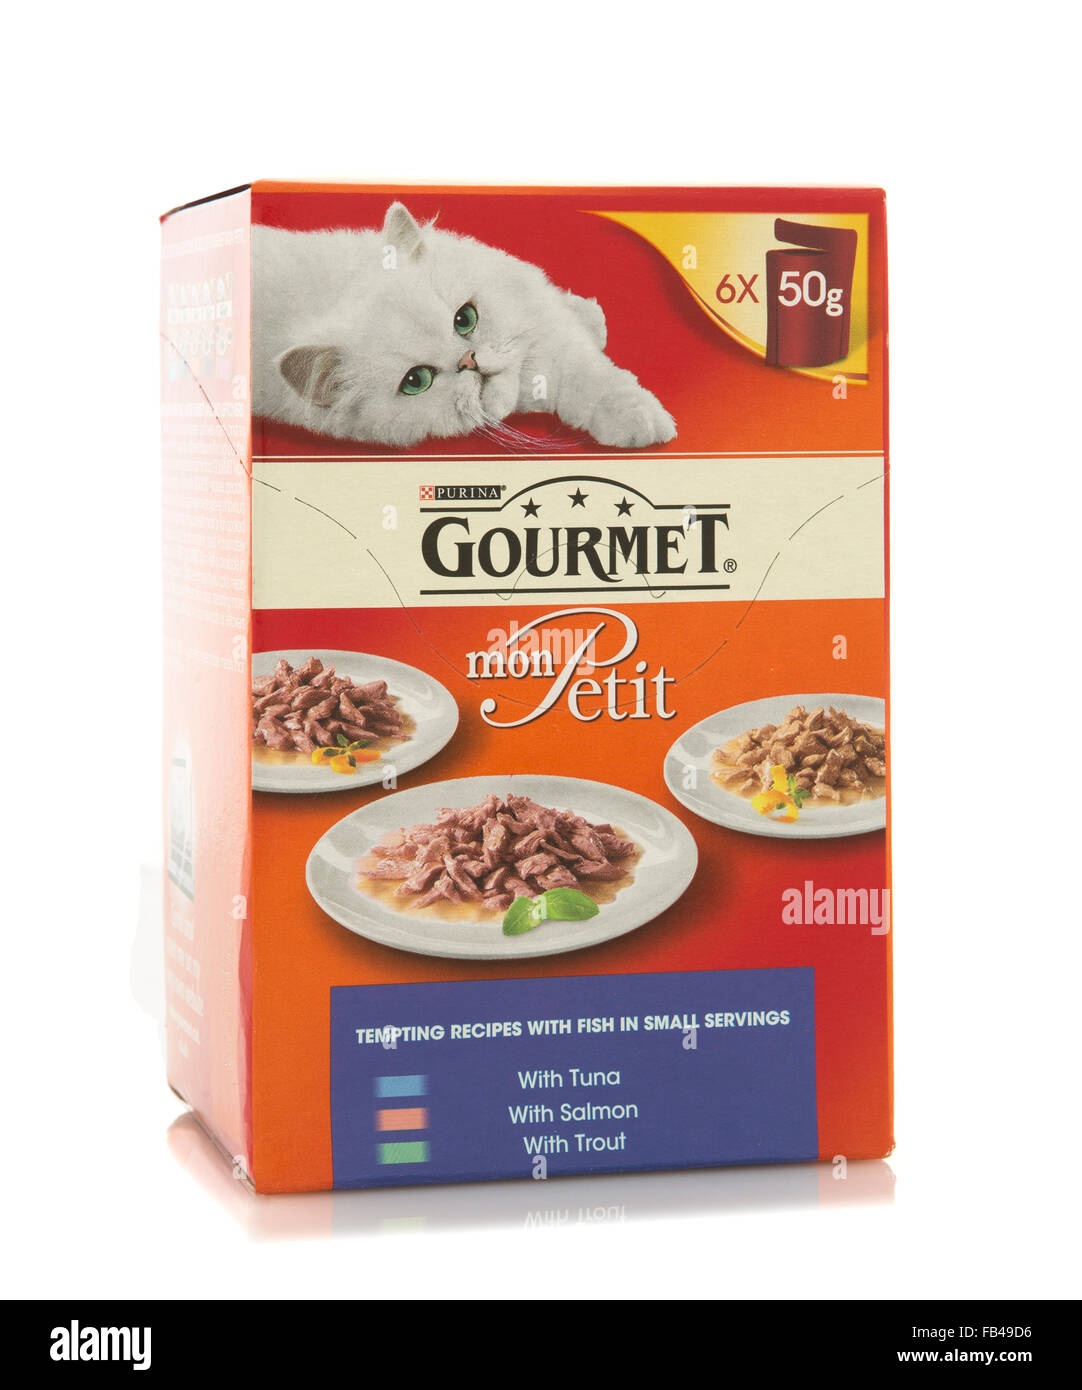 Gourmet Mon Petit cat food. Gourmet is product of Purina Mills of Gray Summit, Missouri - Stock Image